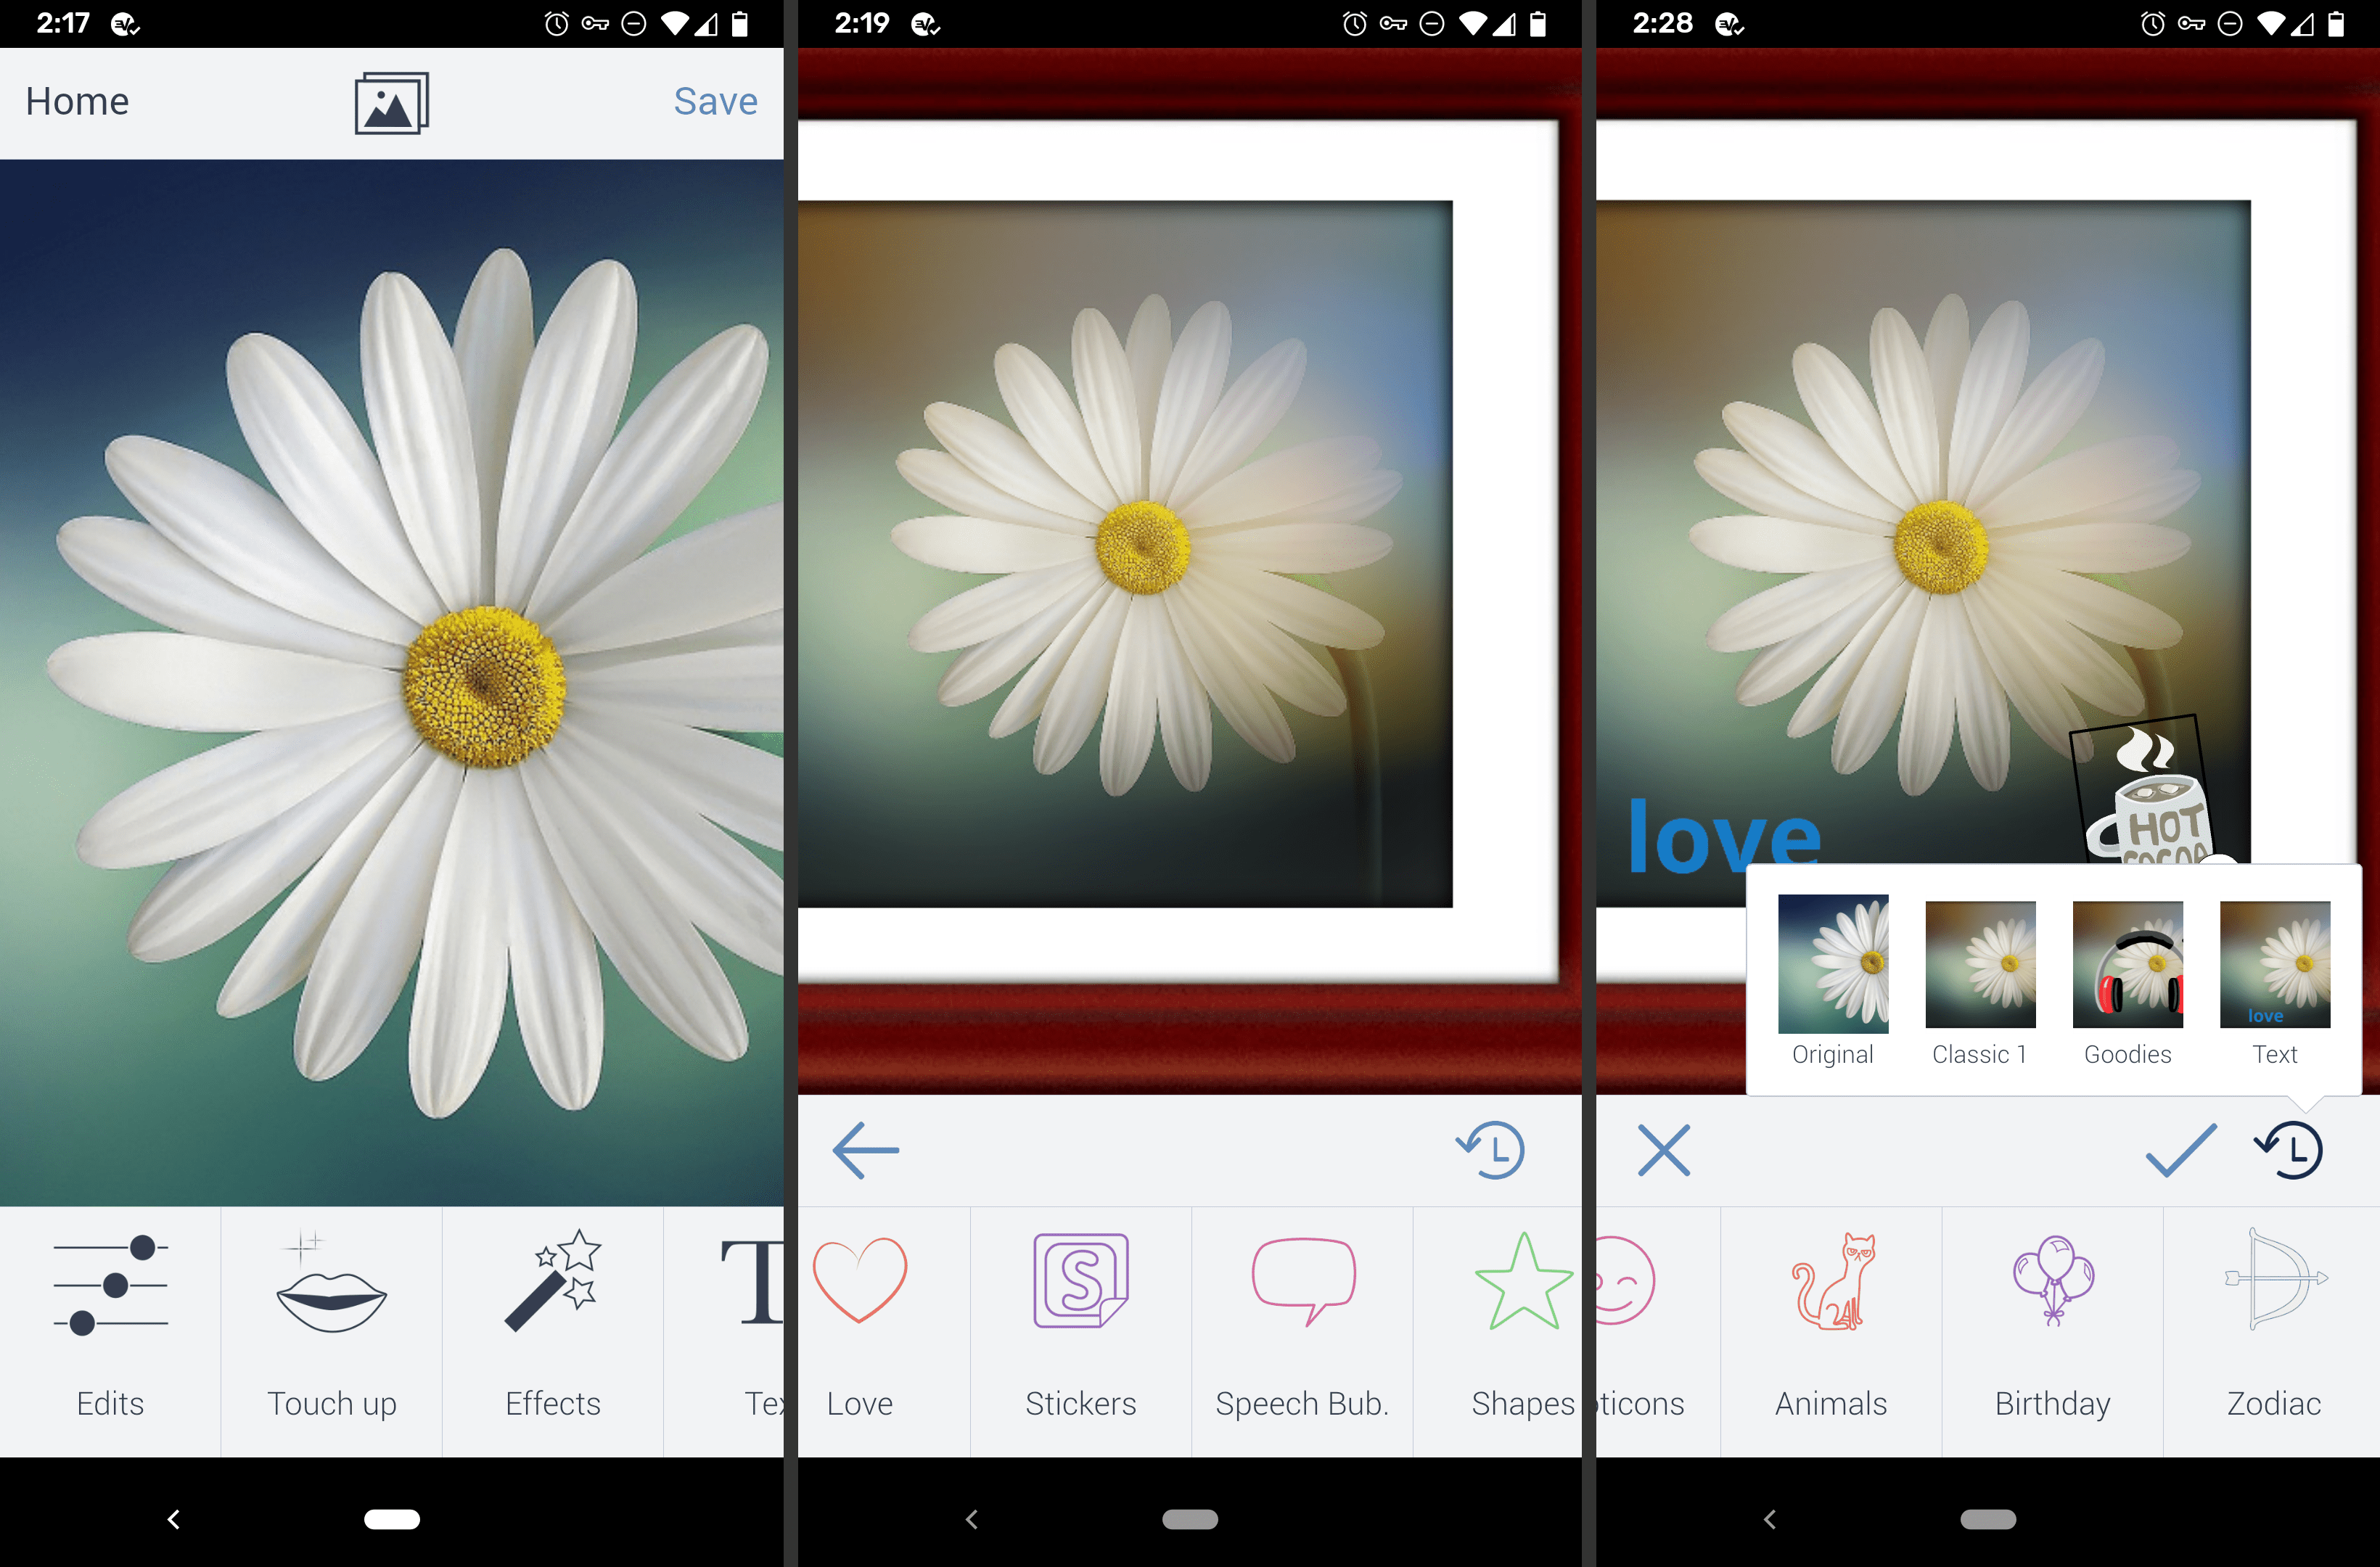 Screenshot of the BeFunky Android image editor app